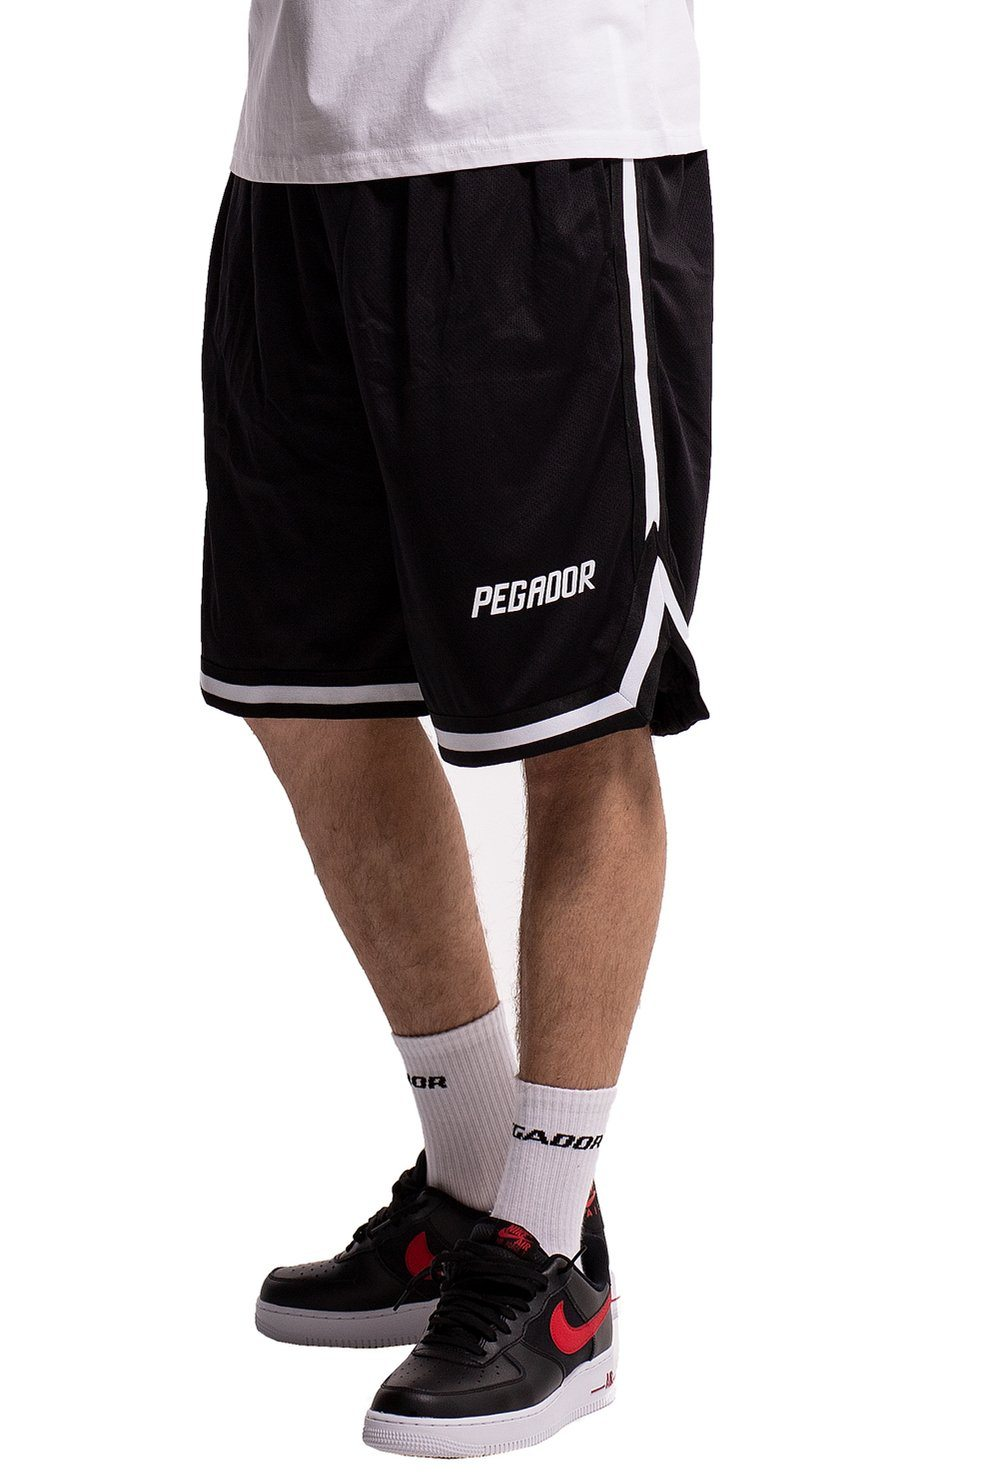 Eddie Mesh Shorts Black - PEGADOR - Dominate the Hype